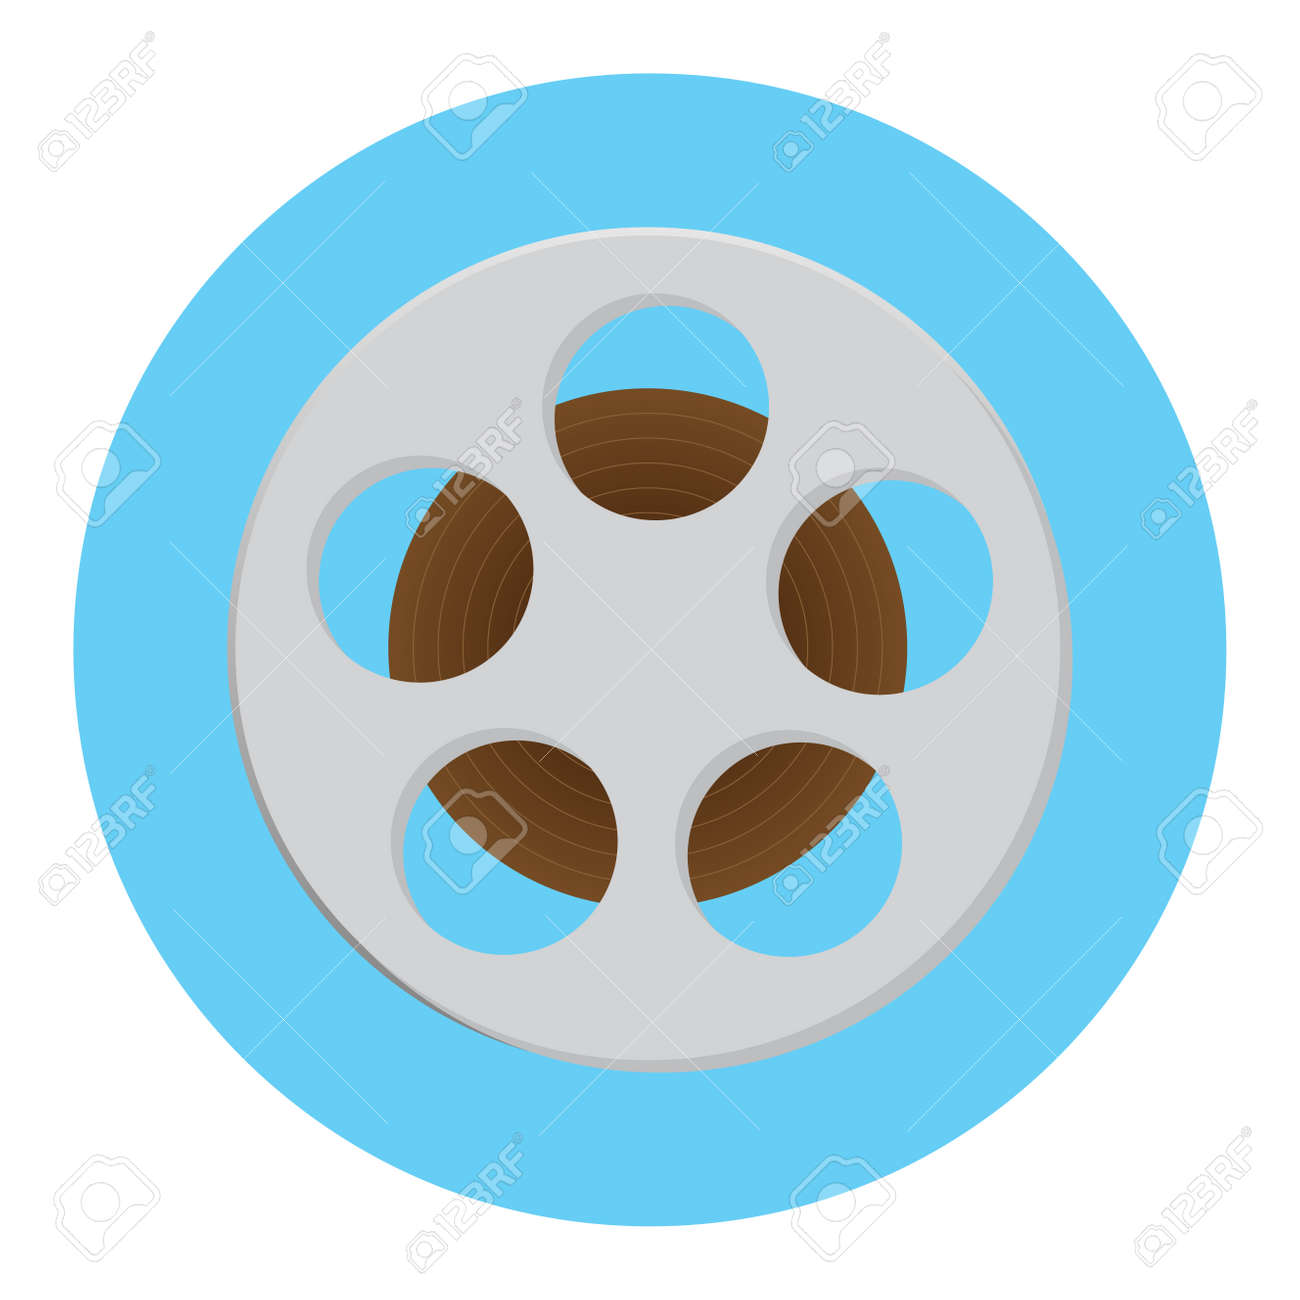 reel of film icon film strip and movie reel film roll and film rh 123rf com film icon vector free film icon vector png